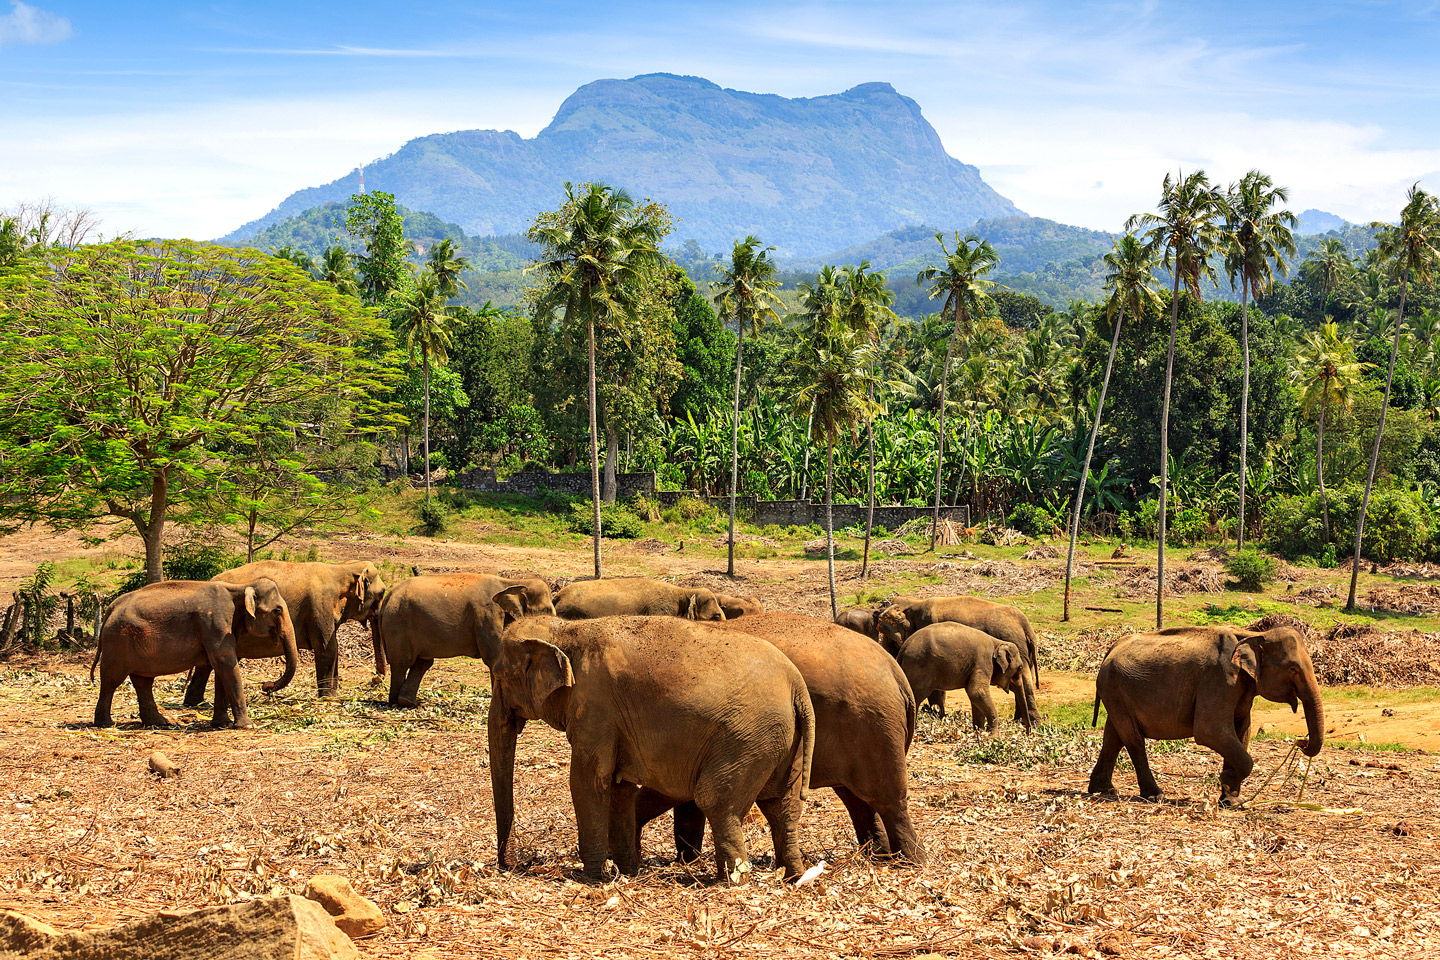 Elephants in Pinawella national park, Sri Lanka